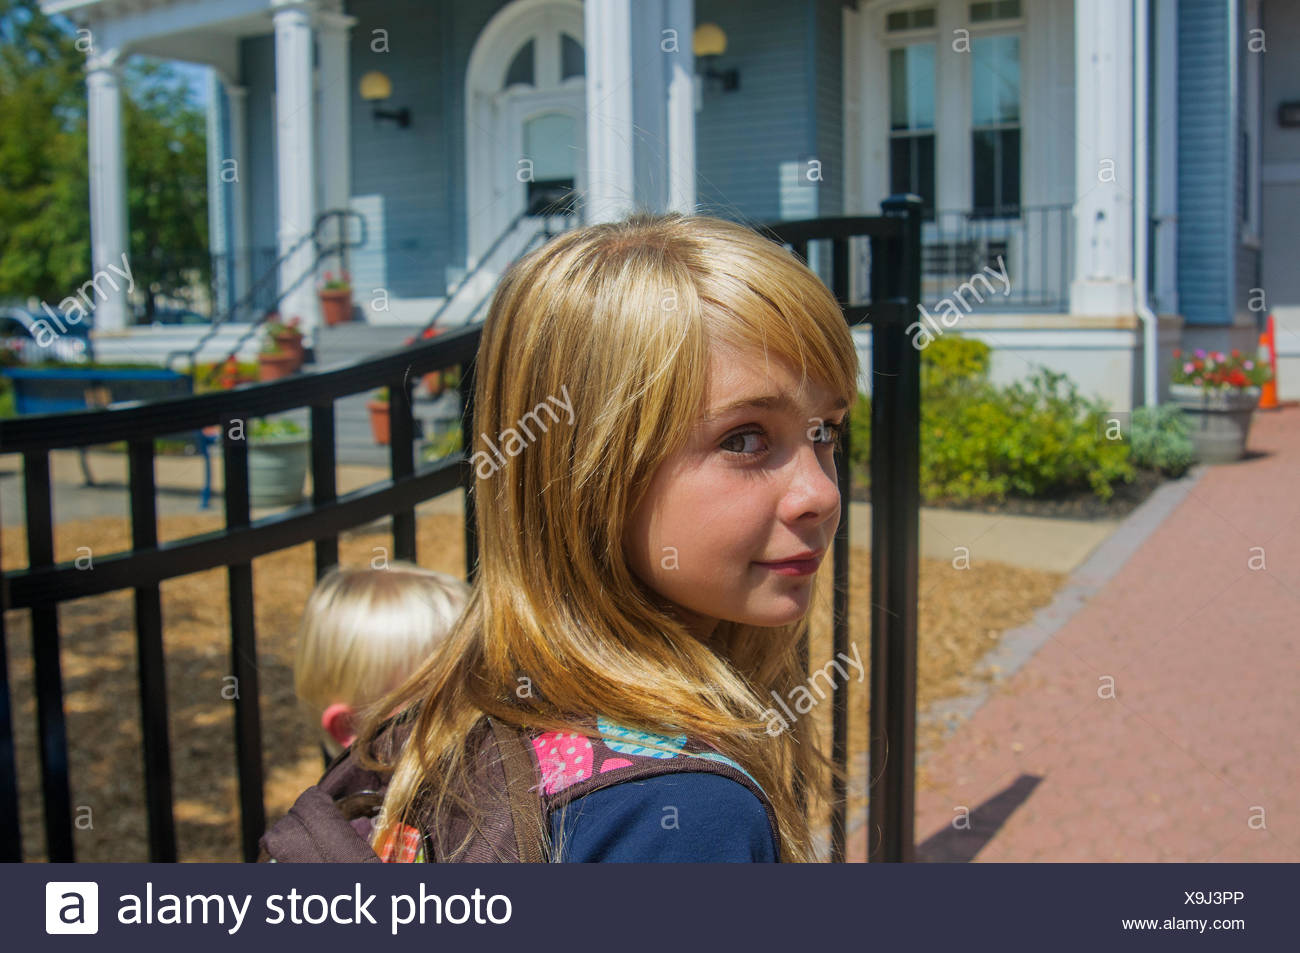 Schoolgirl and younger brother at school gate - Stock Image